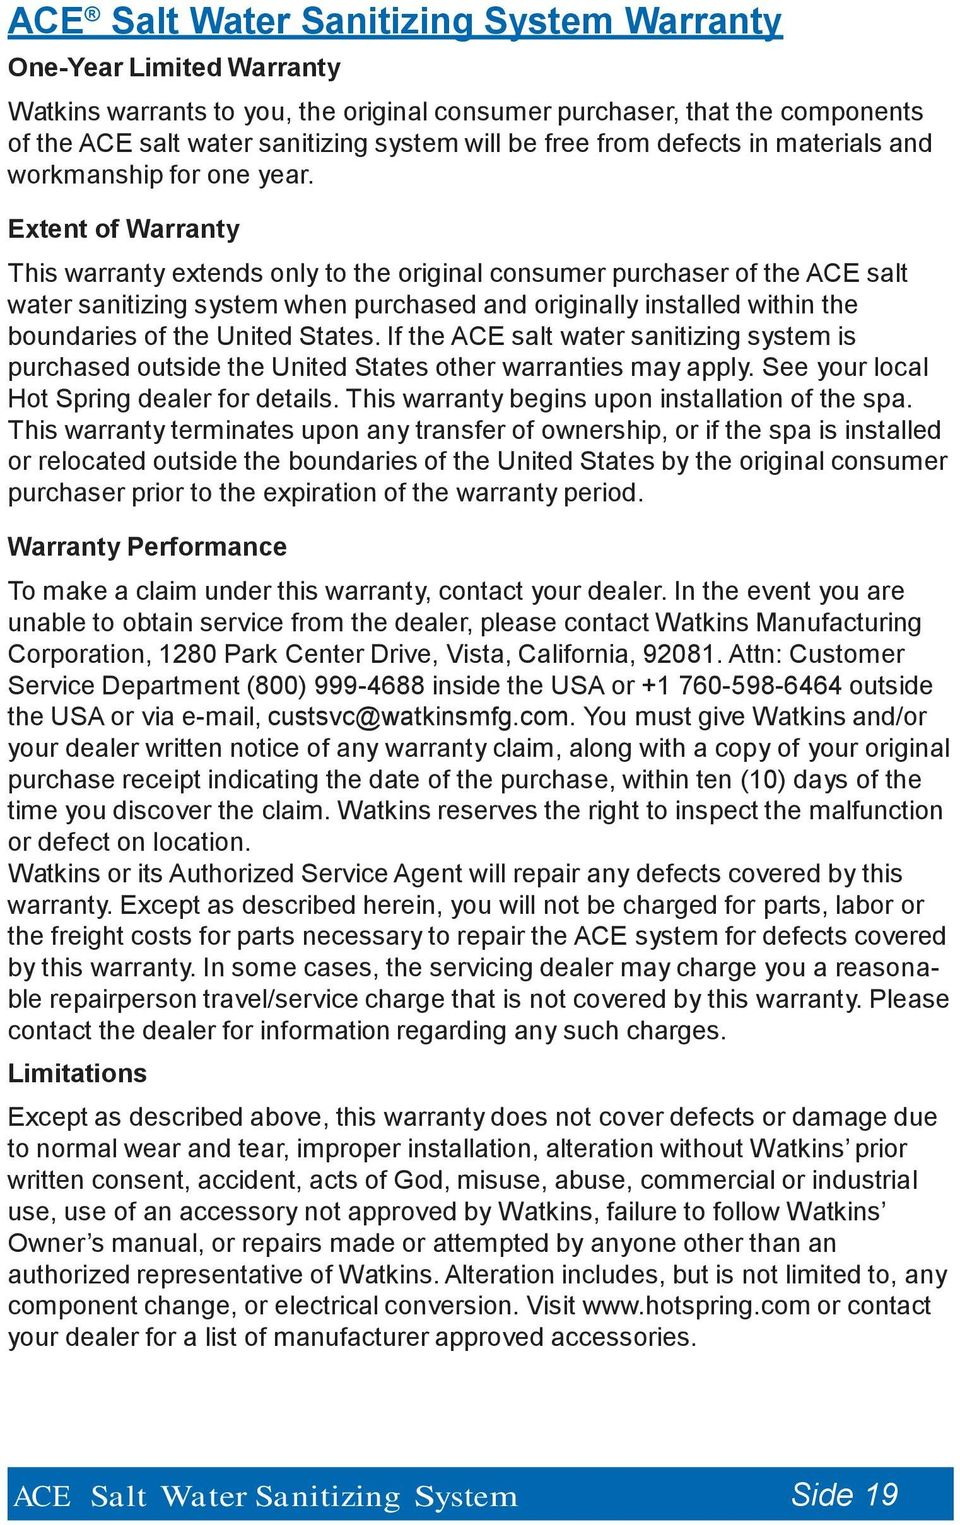 Extent of Warranty This warranty extends only to the original consumer purchaser of the ACE salt water sanitizing system when purchased and originally installed within the boundaries of the United